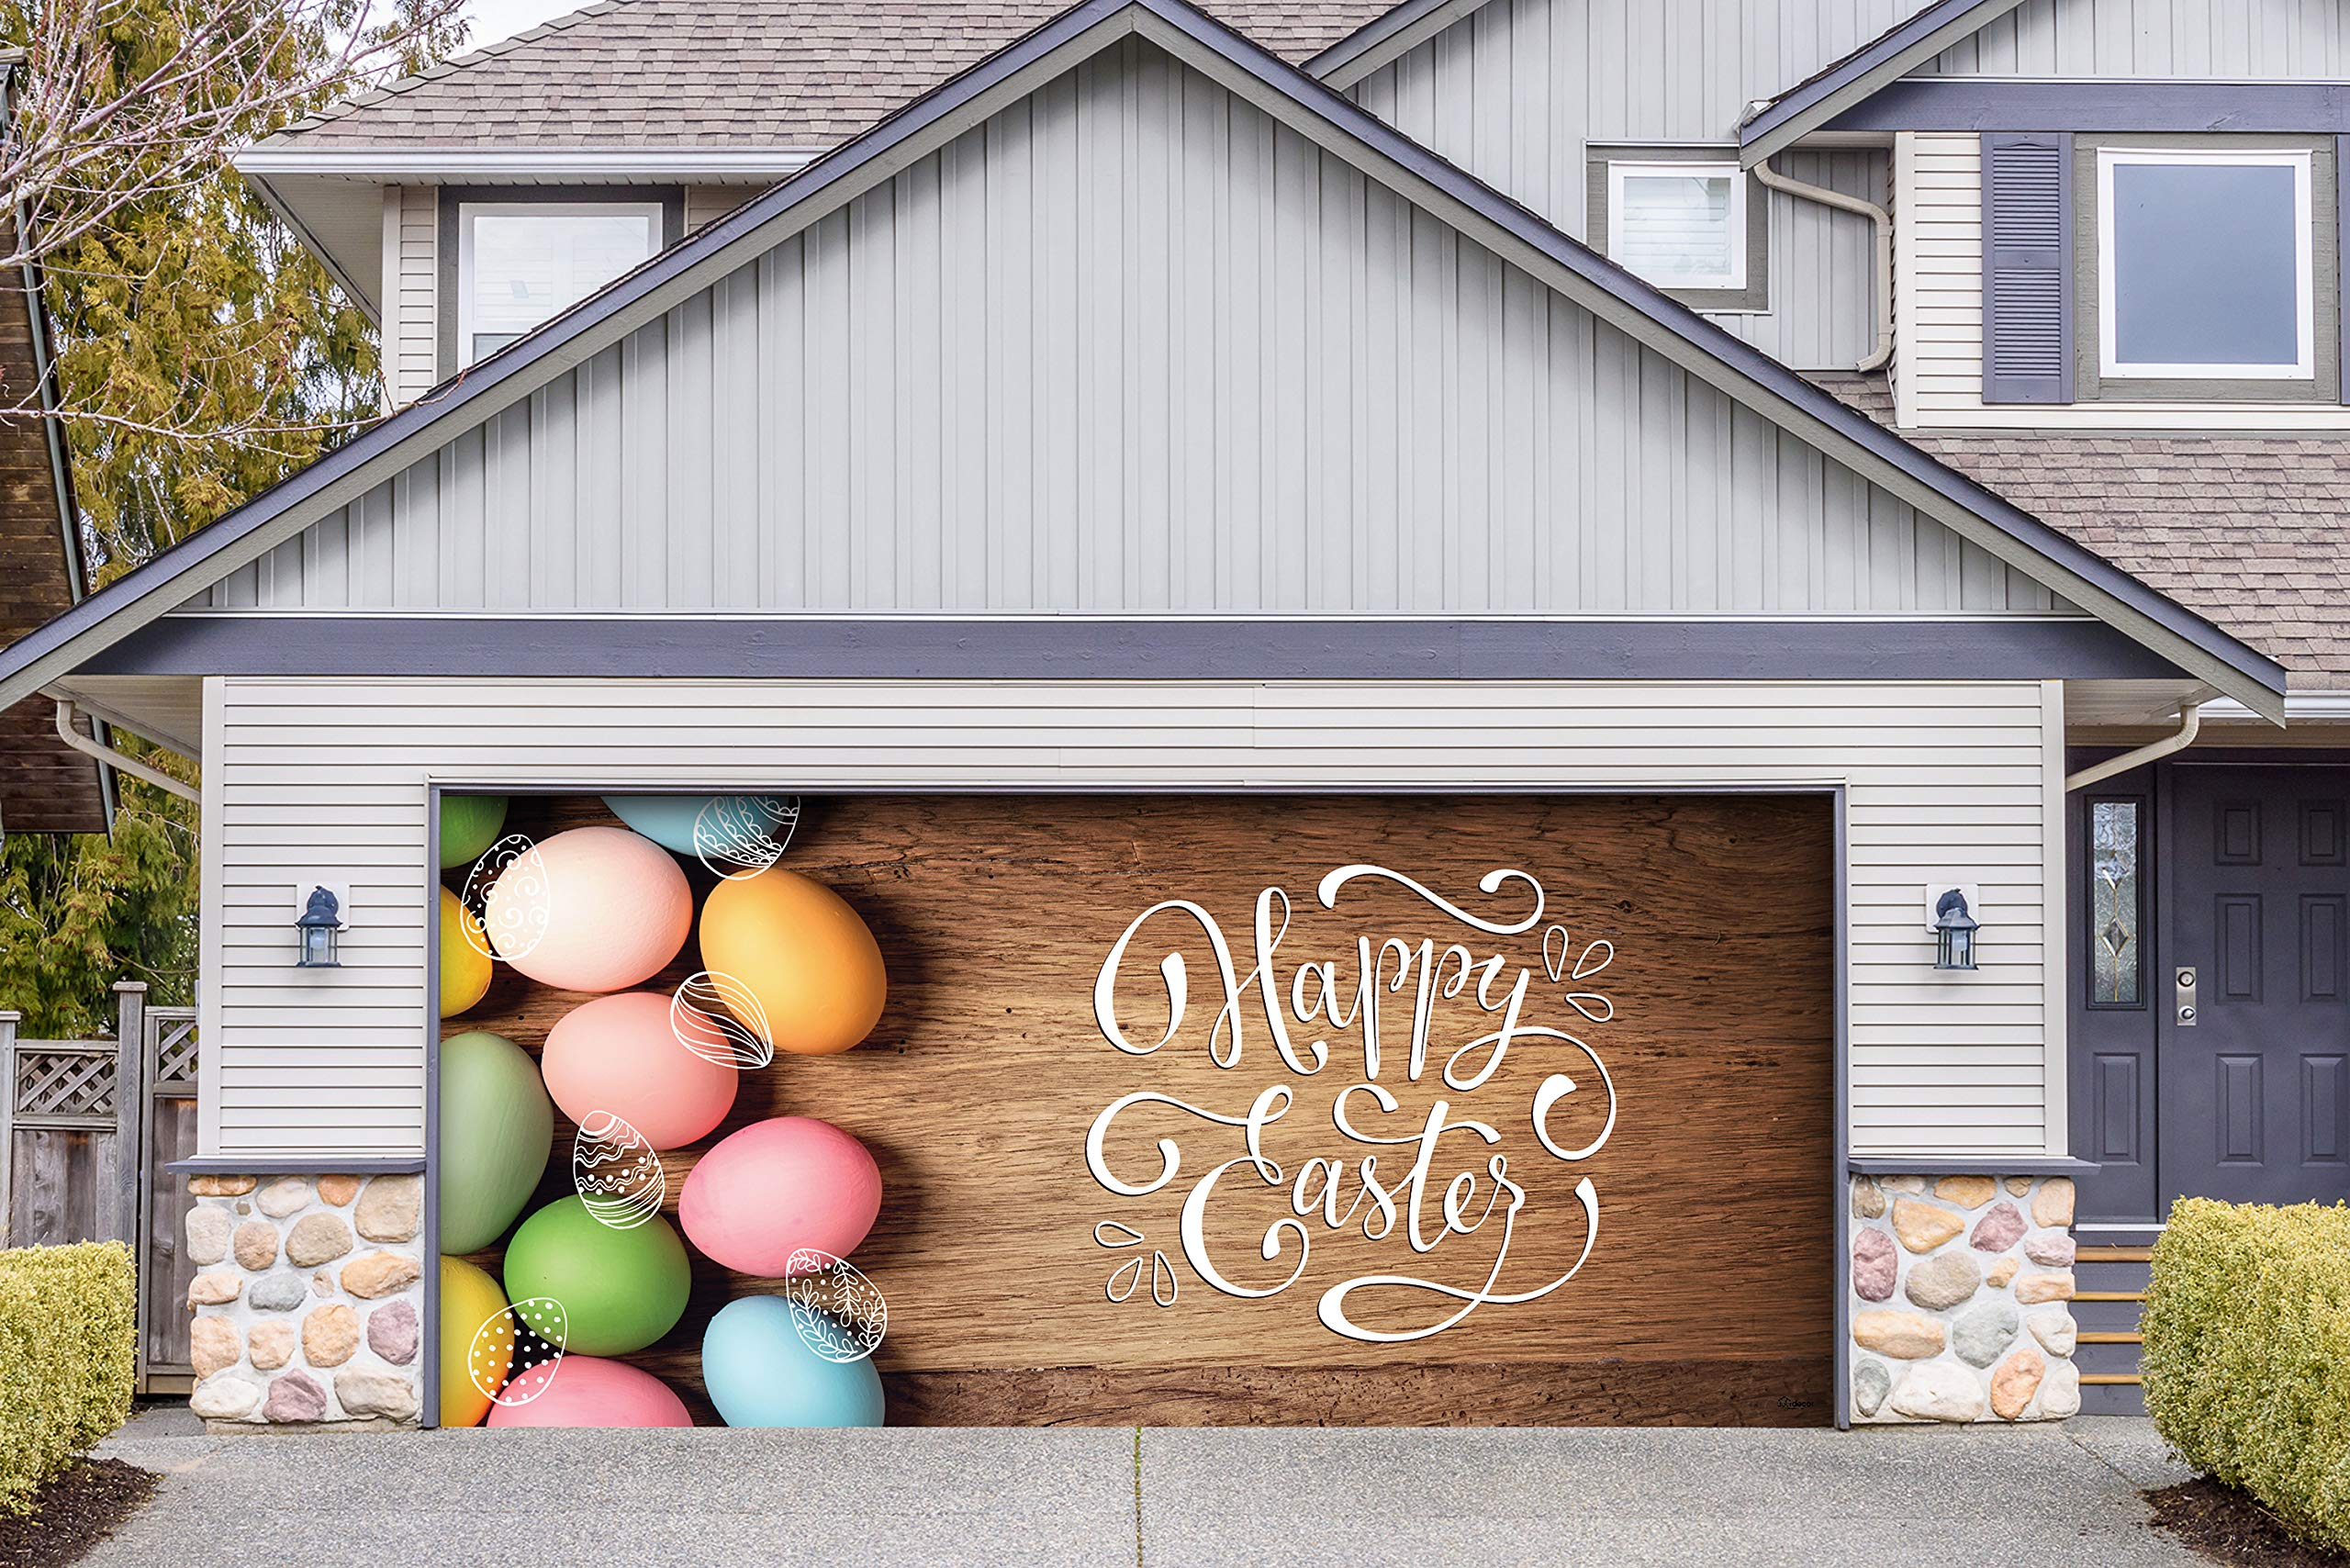 Victory Corps Happy Easter Eggs - Holiday Garage Door Banner Mural Sign Décor 7'x 16' Car Garage - The Original Holiday Garage Door Banner Decor